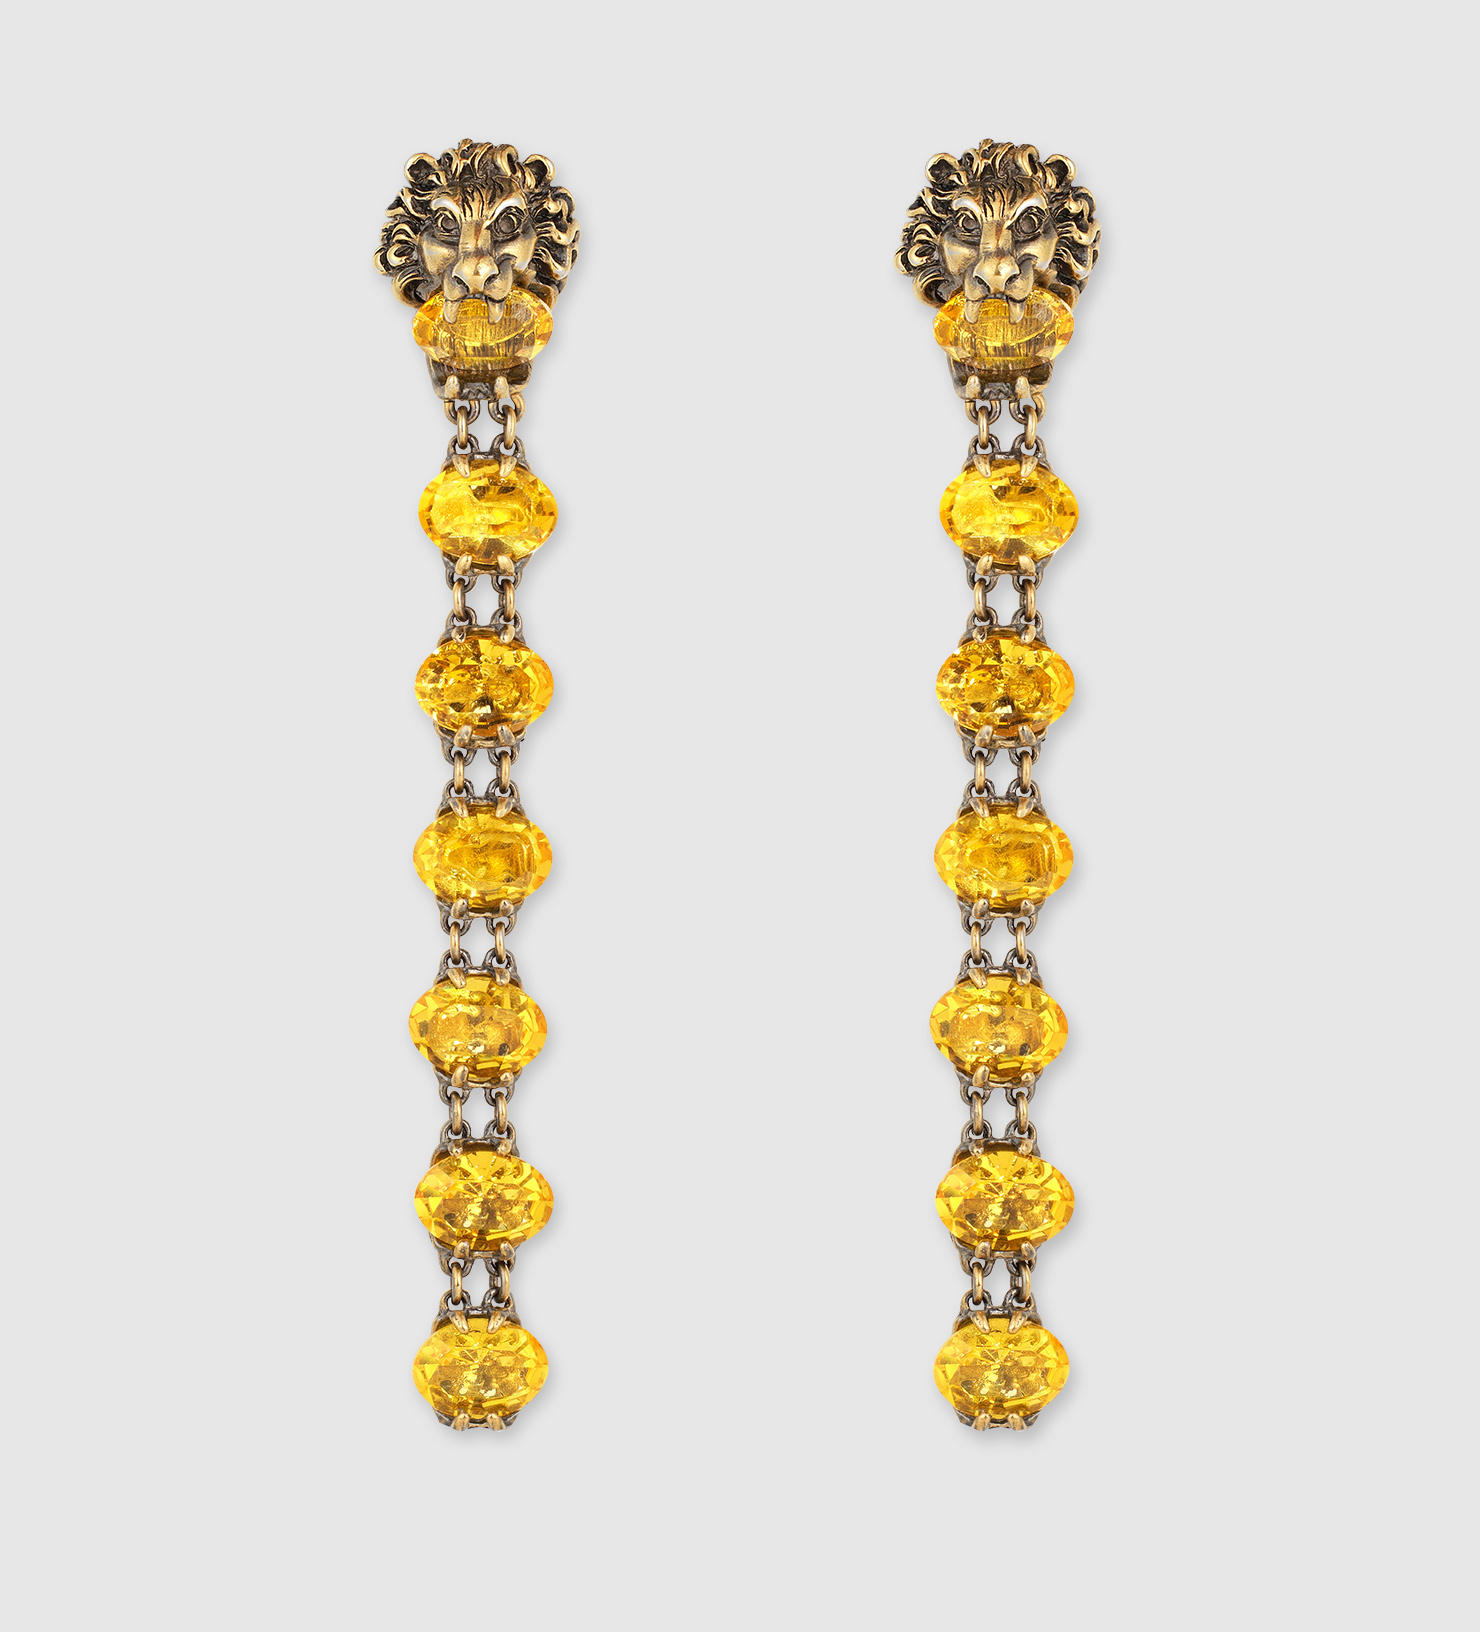 Lyst - Gucci Lion Head Earrings With Crystals in Metallic